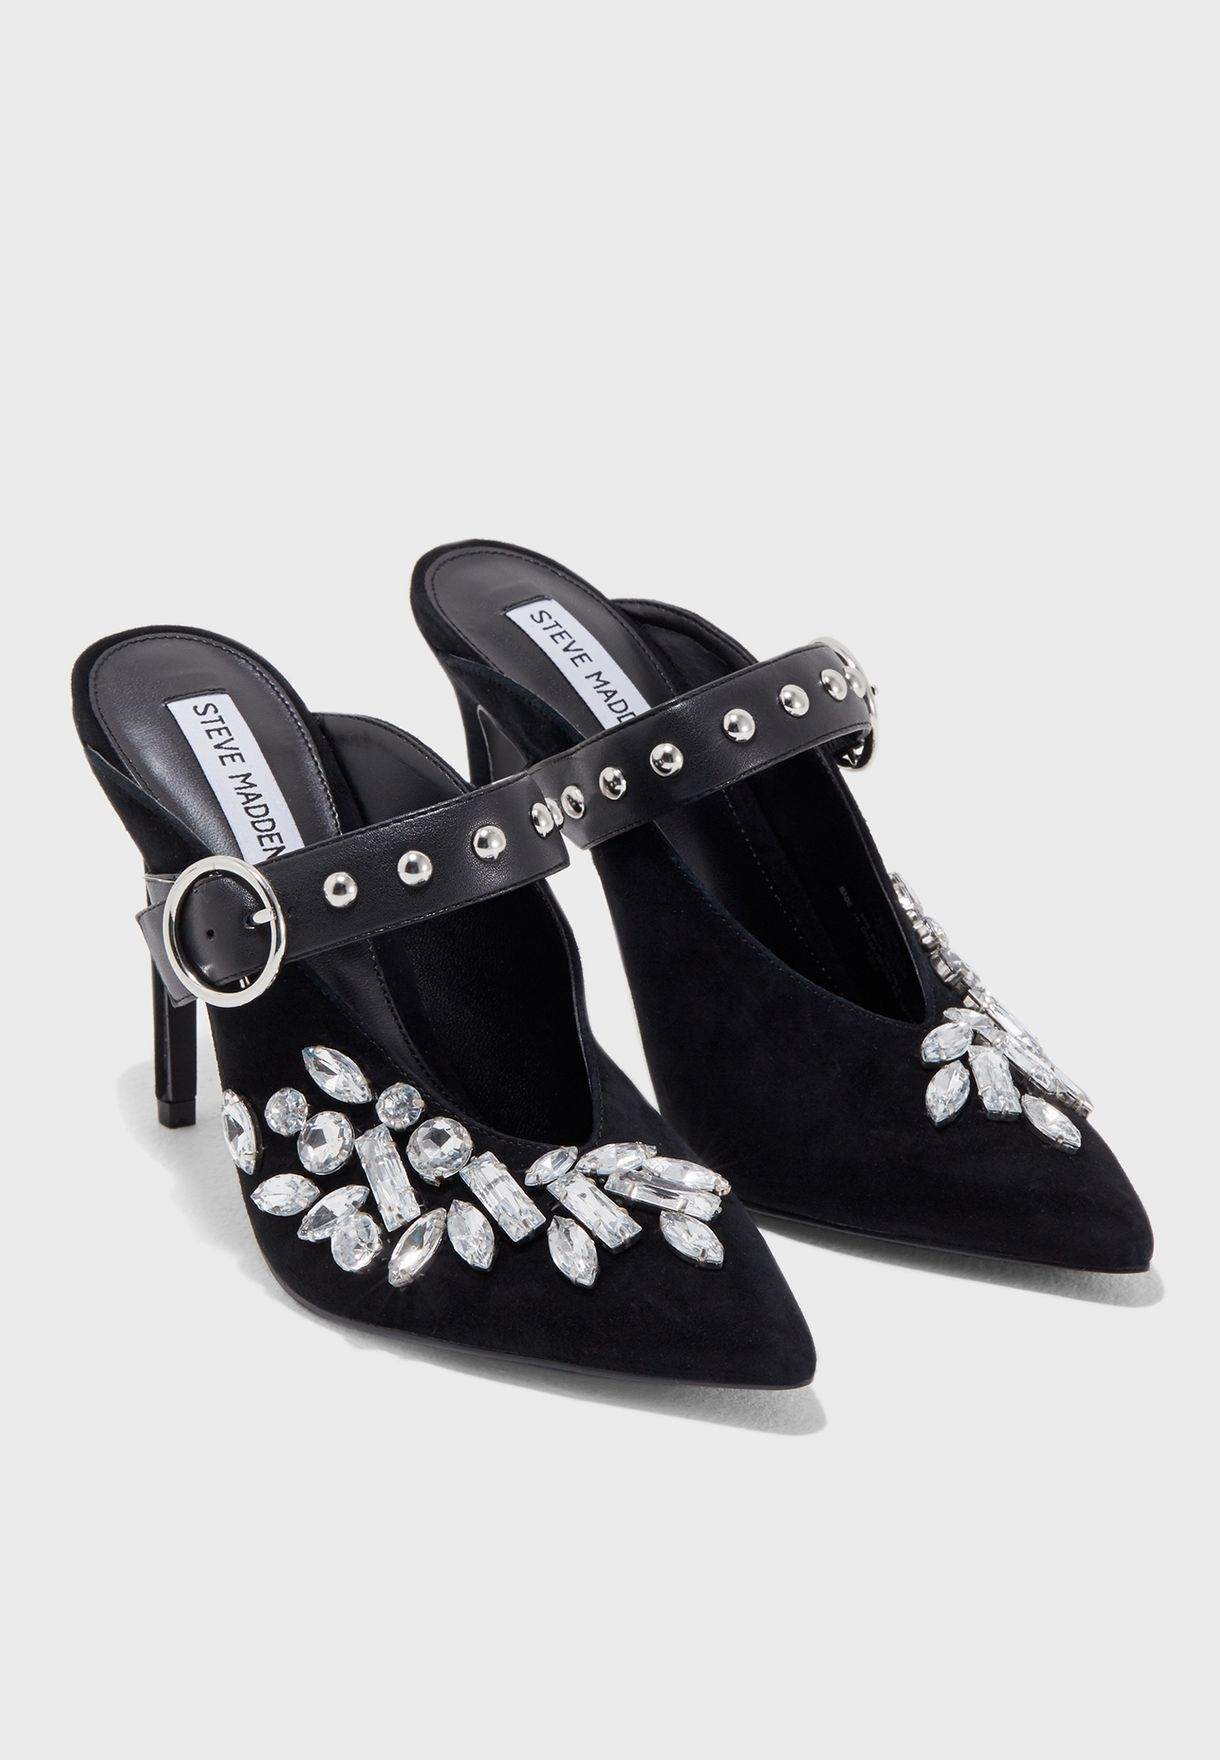 05836d24d33 Shop Steve Madden black Keep Embellished Mary Jane Pump KEEP for ...